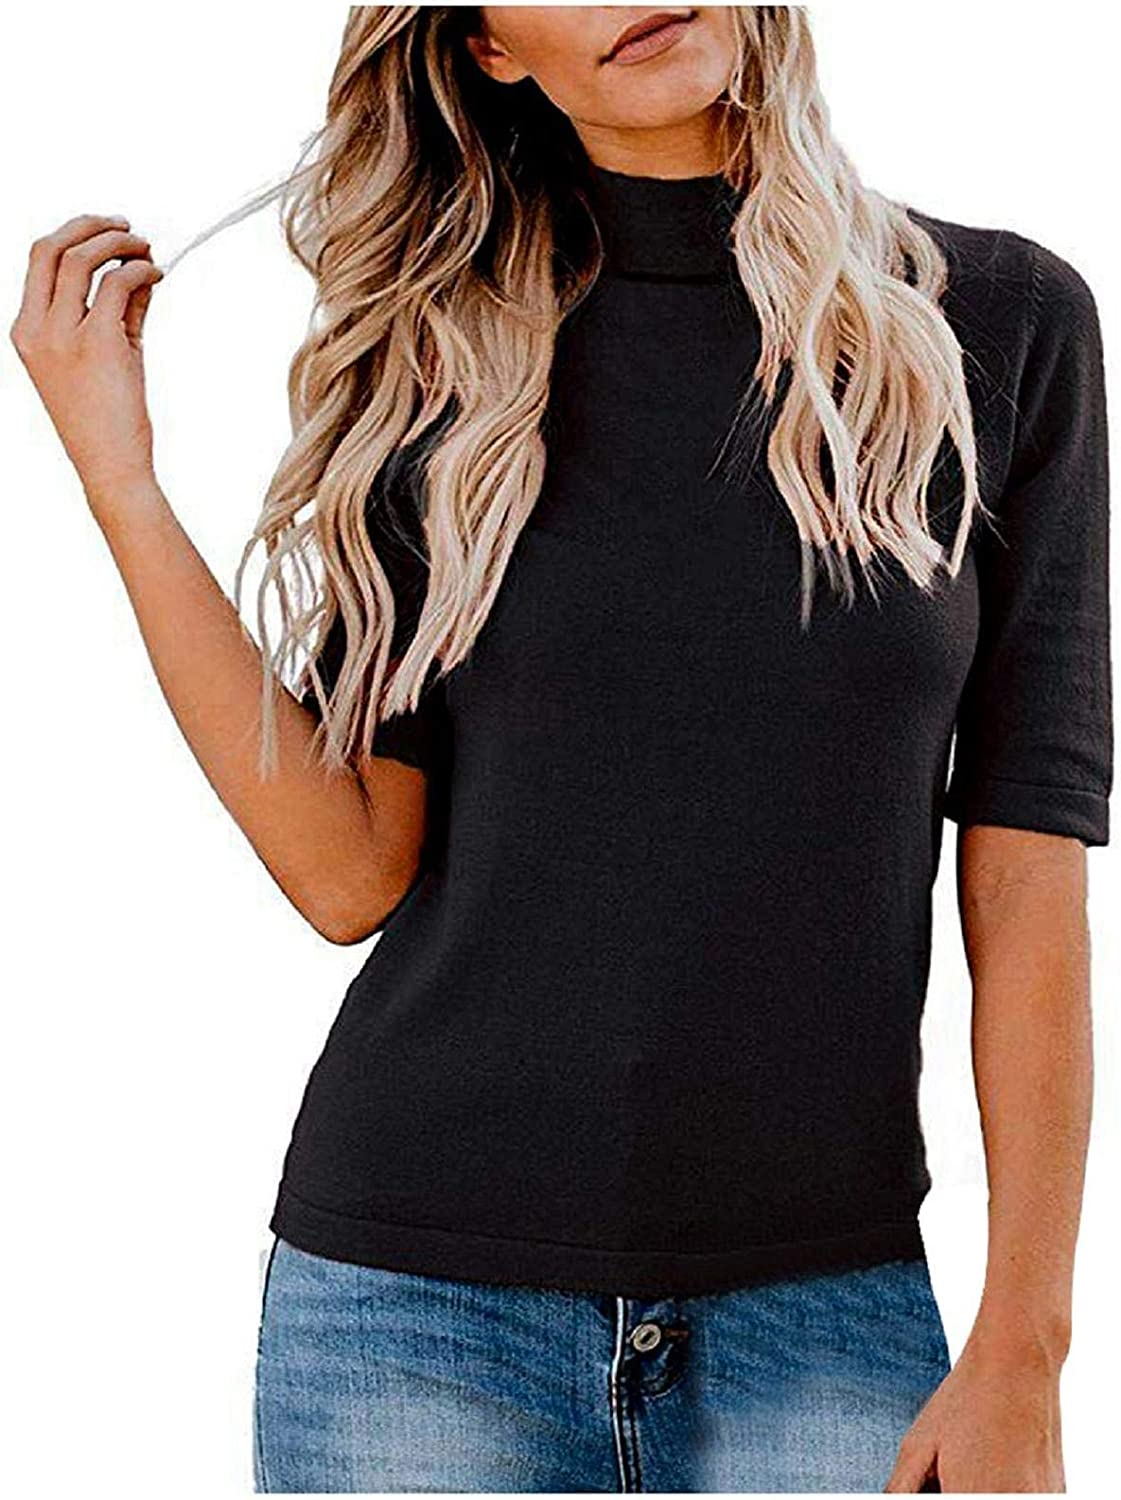 TOTOD Women Summer Plain T-Shirt Mock/Turtle Neck Half Sleeve Blouses Slim Fitted Casual Cute Tee Tops